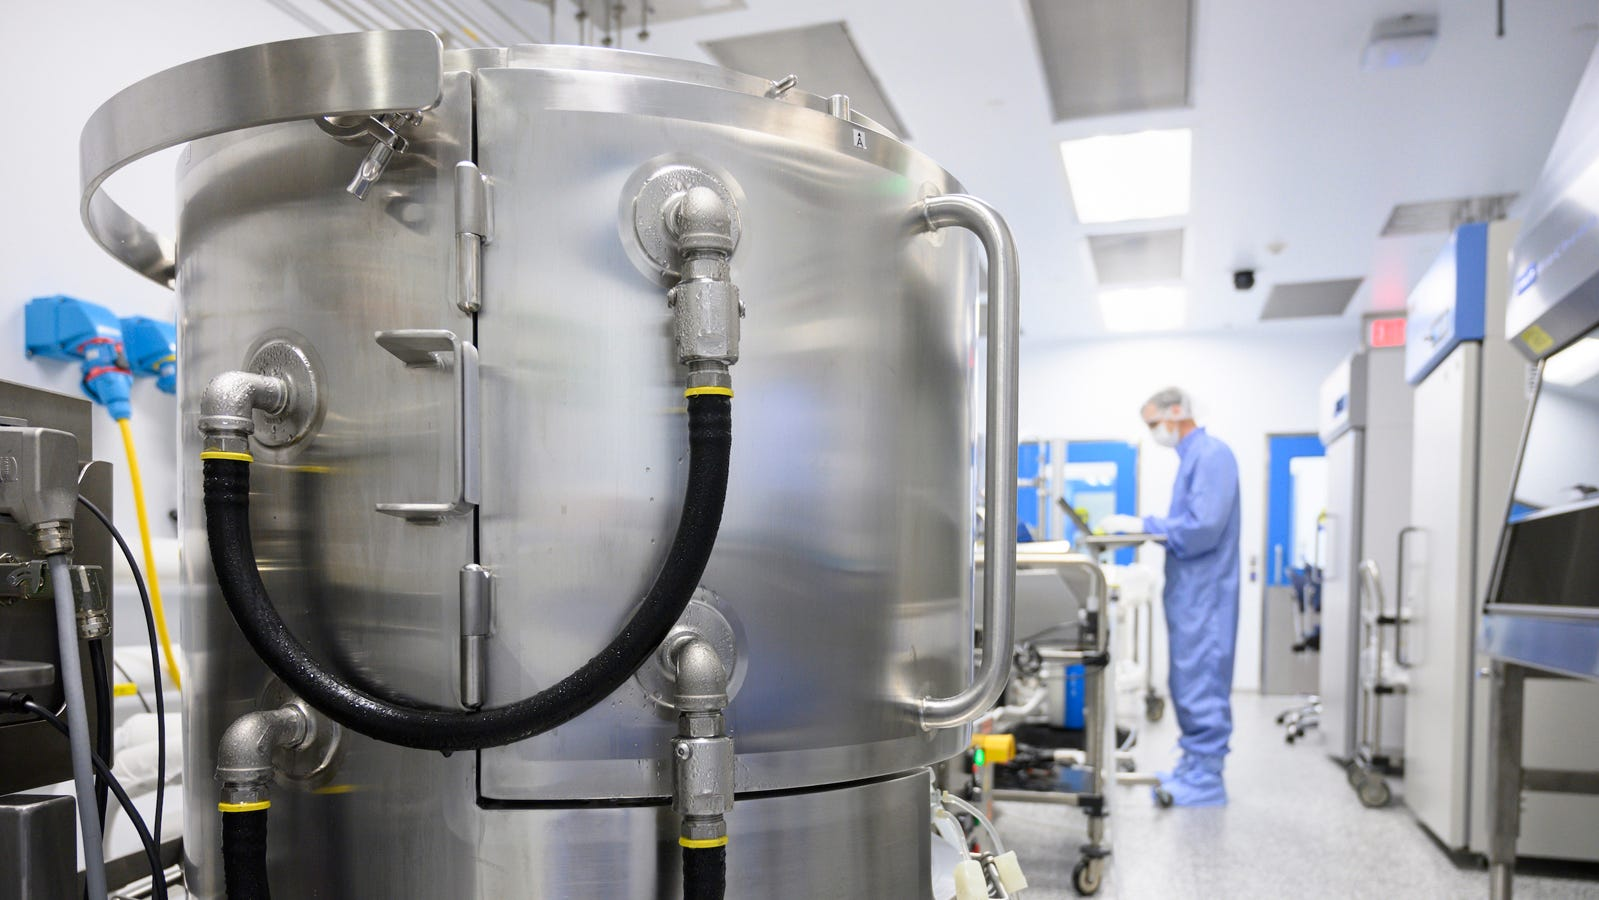 A Lonza Biologics employee in Portsmouth enters data on the other side of a mixer used in the production of the mRNA-1273 vaccine Moderna developed to fight the COVID-19 virus.